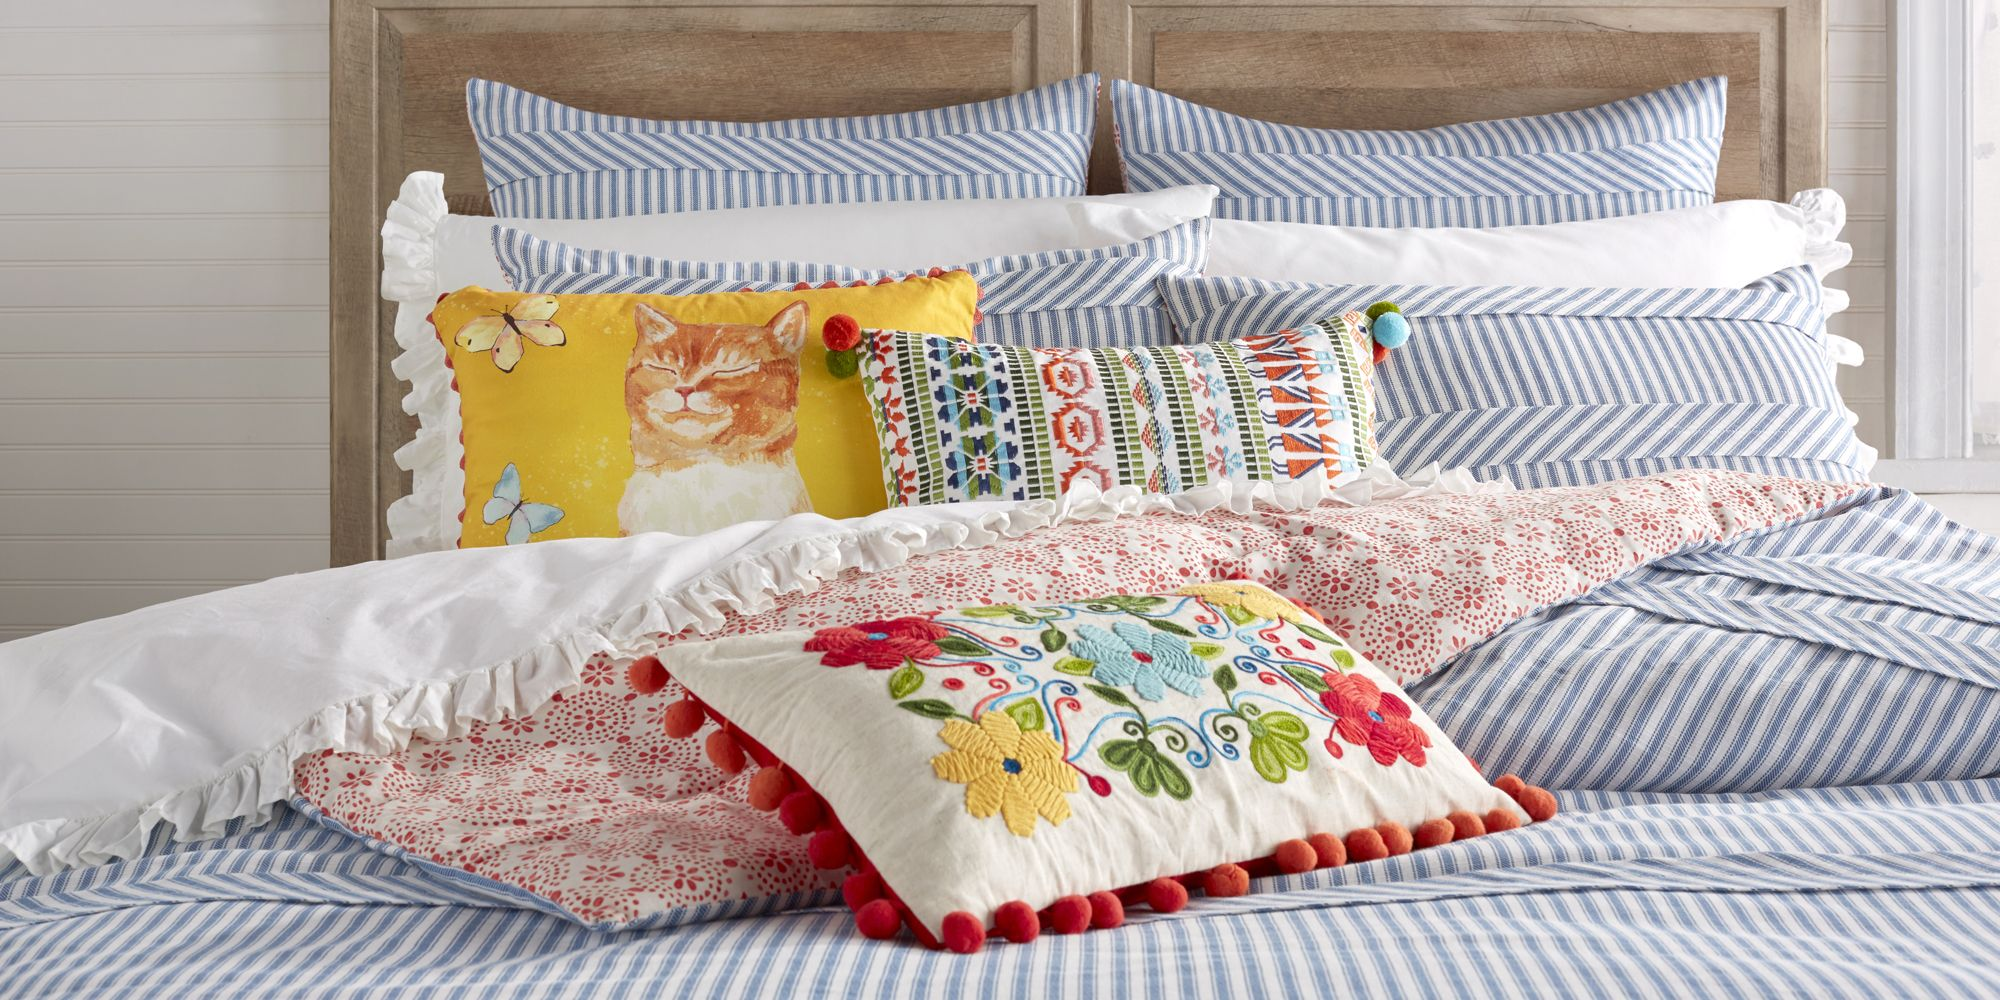 Pioneer Woman Bedding Collection at Walmart